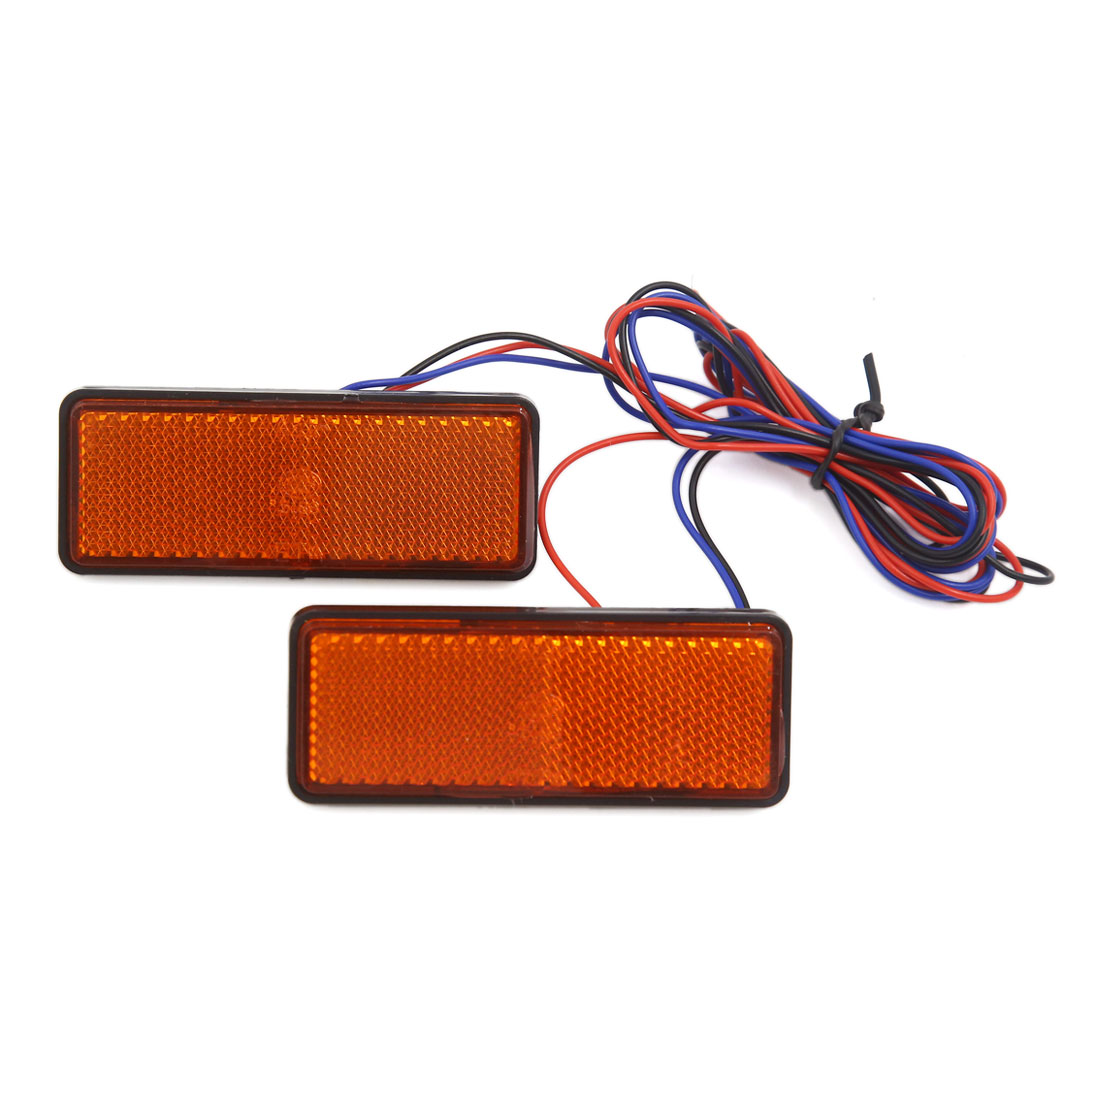 2 Pcs Universal Yellow Rectangle LED Reflector Turn Signal Tail Brake Light